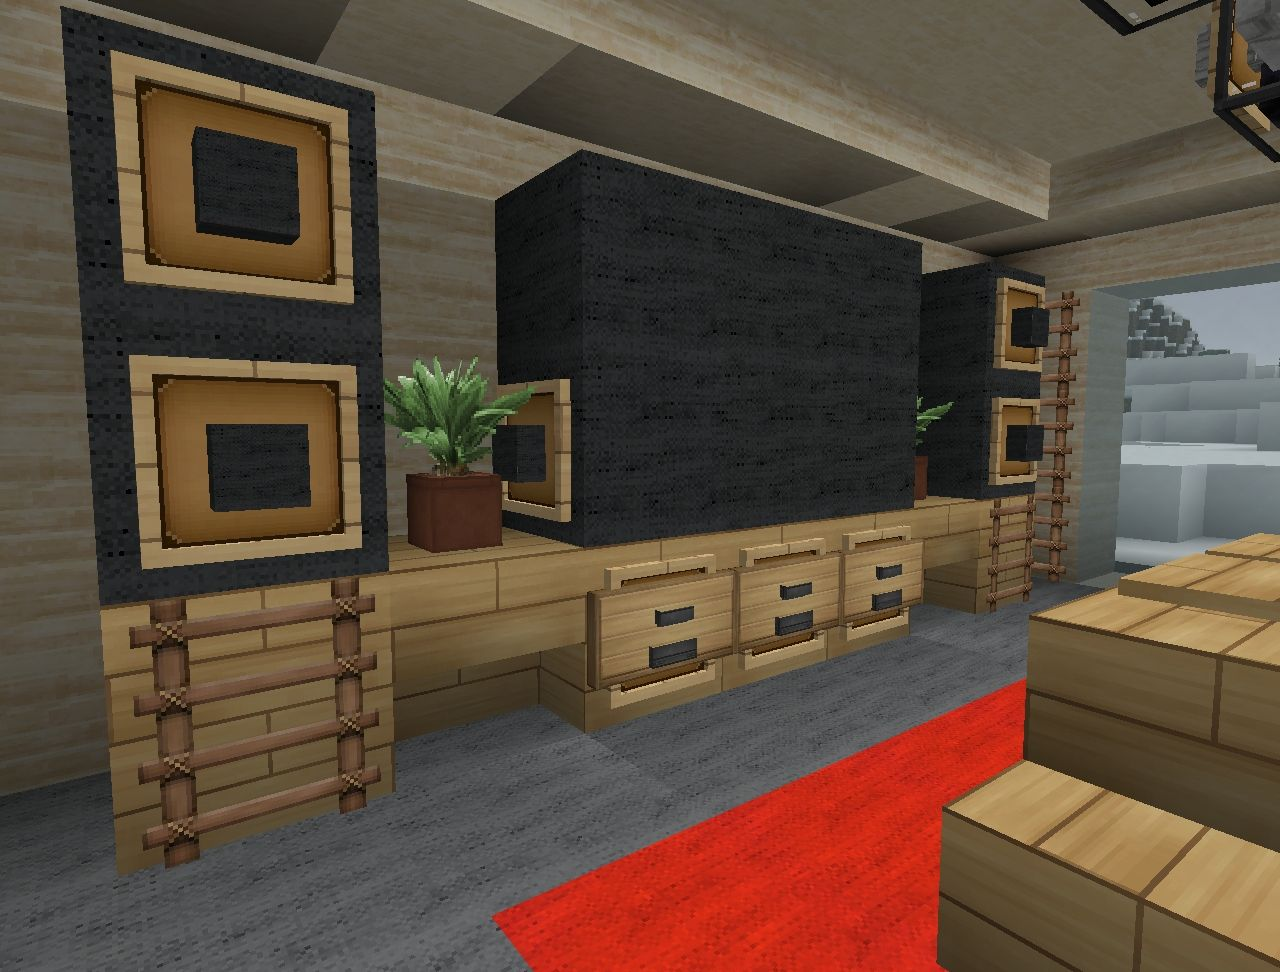 1 4 2 New Interior Design Concept Minecraft Blog